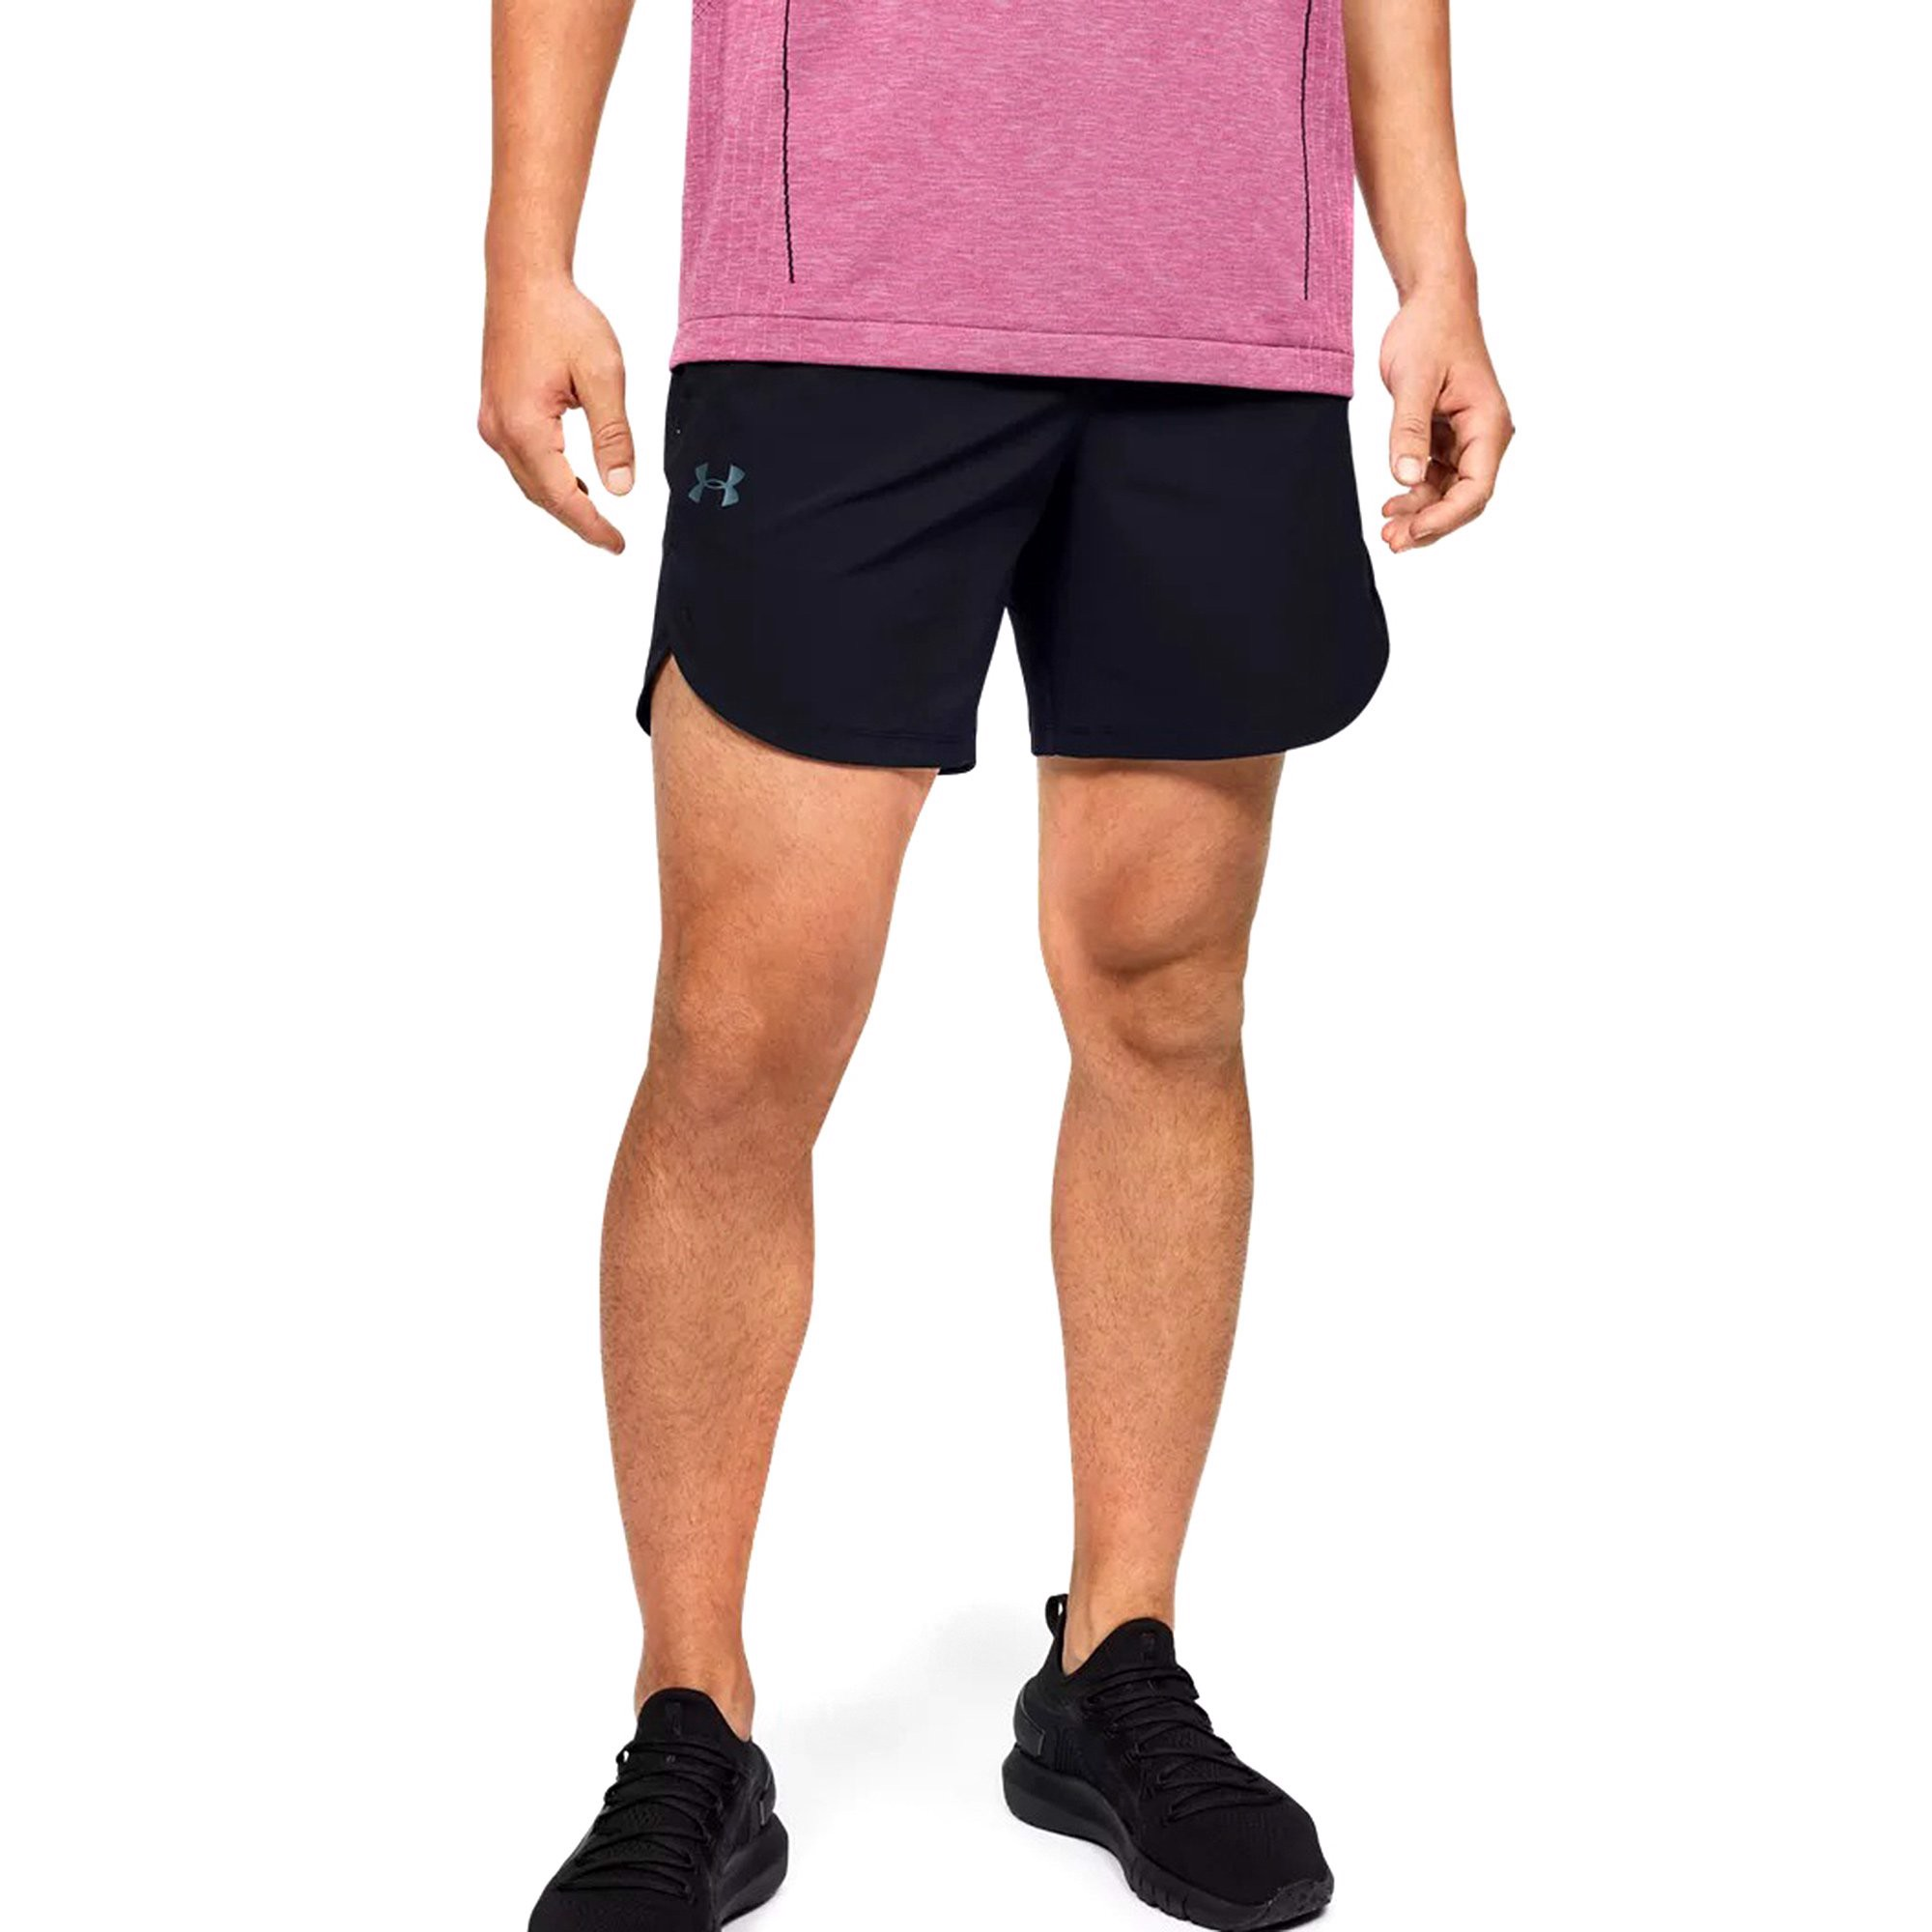 Under Armour - Quần ngắn nam Stretch-Woven Shorts Training SS21-1351